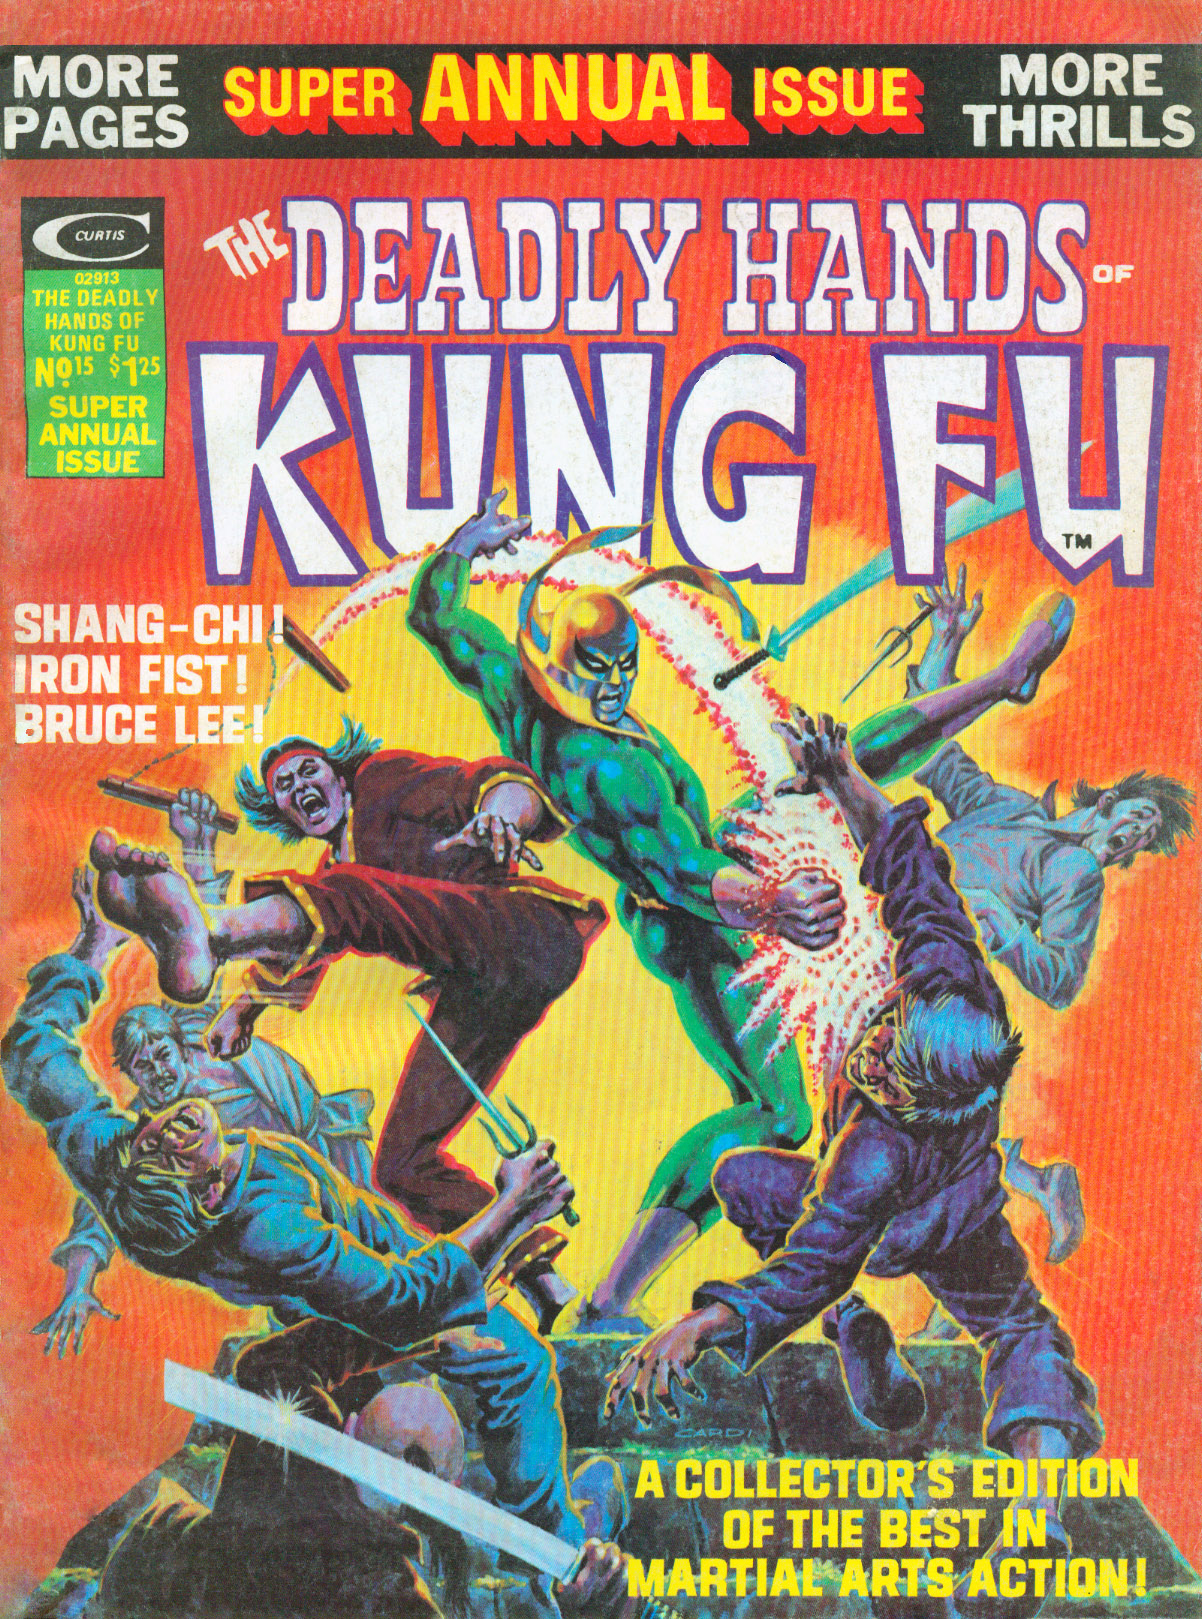 Deadly Hands of Kung-Fu (1974) #15, cover by Nick Cardy.